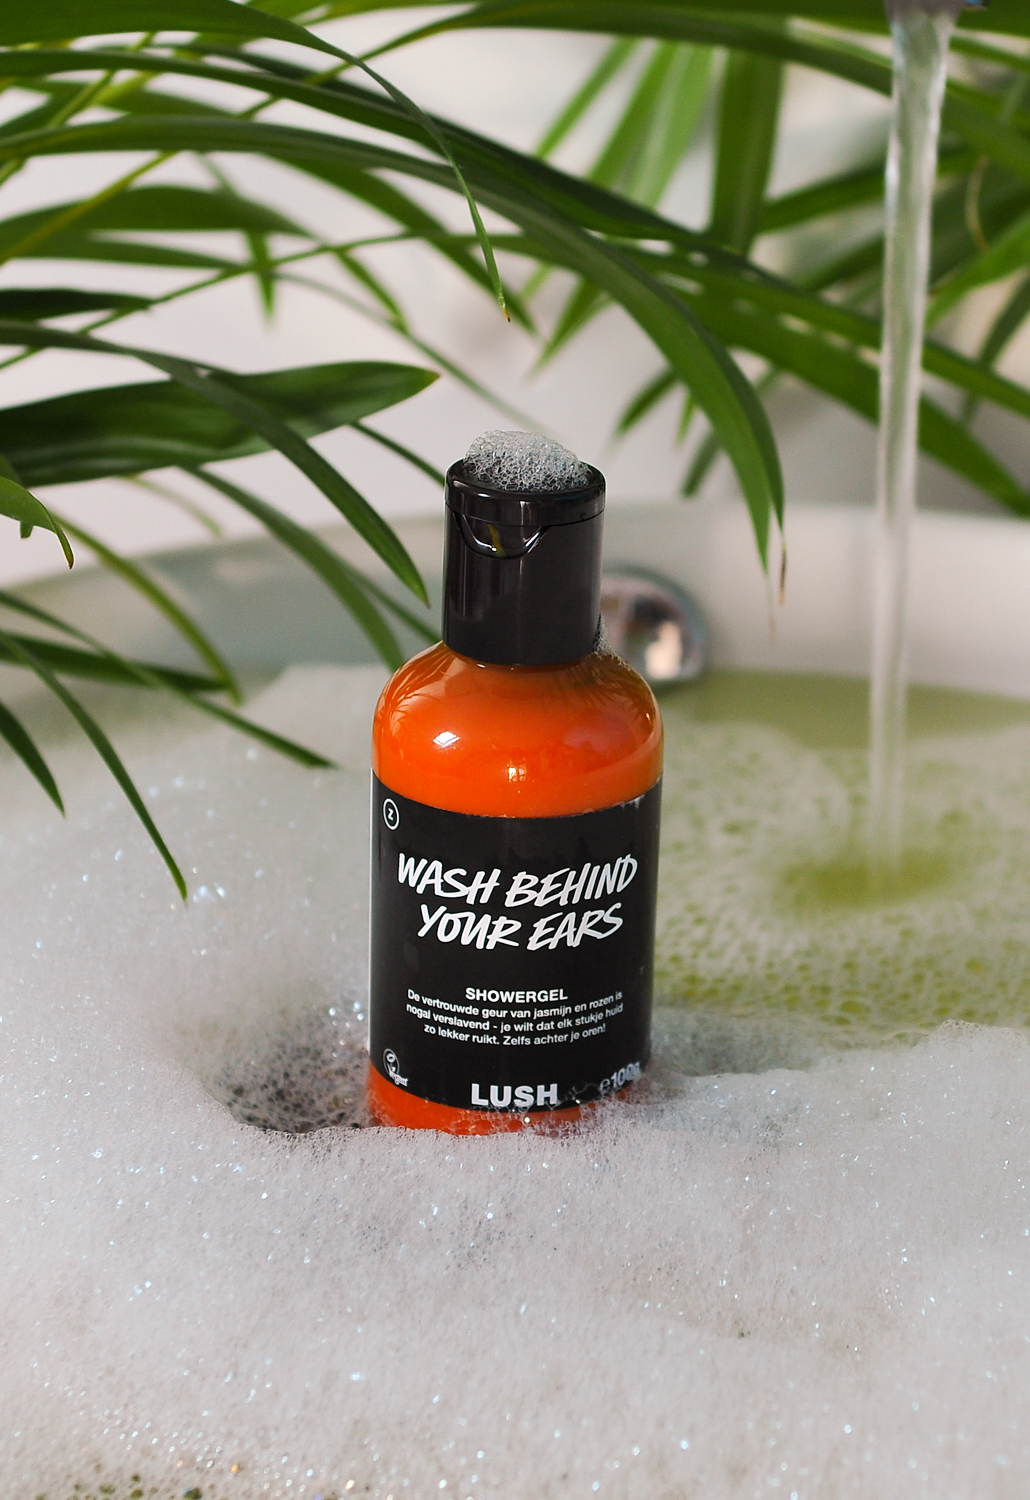 LUSH Wash Behind Your Ears Showergel Pasen